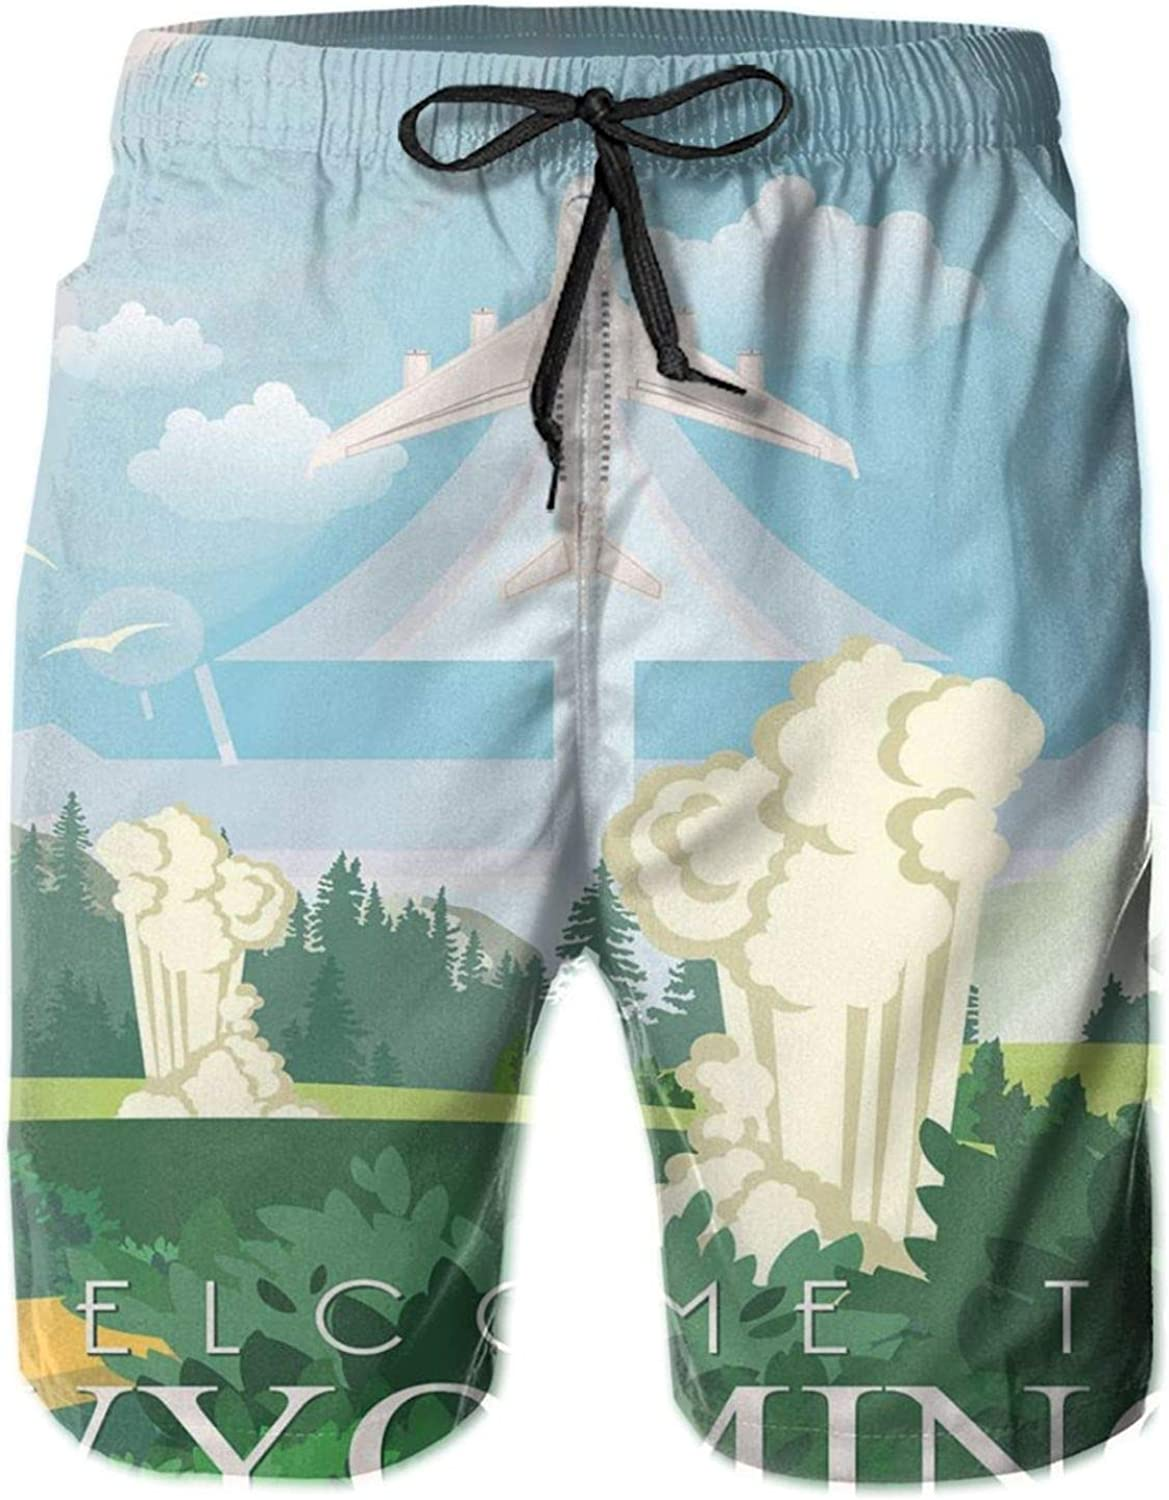 MUJAQ Sweet Digital Cartoonish Illustration of Traveling Equality State Themed Welcome Mens Swim Trucks Shorts with Mesh Lining,M